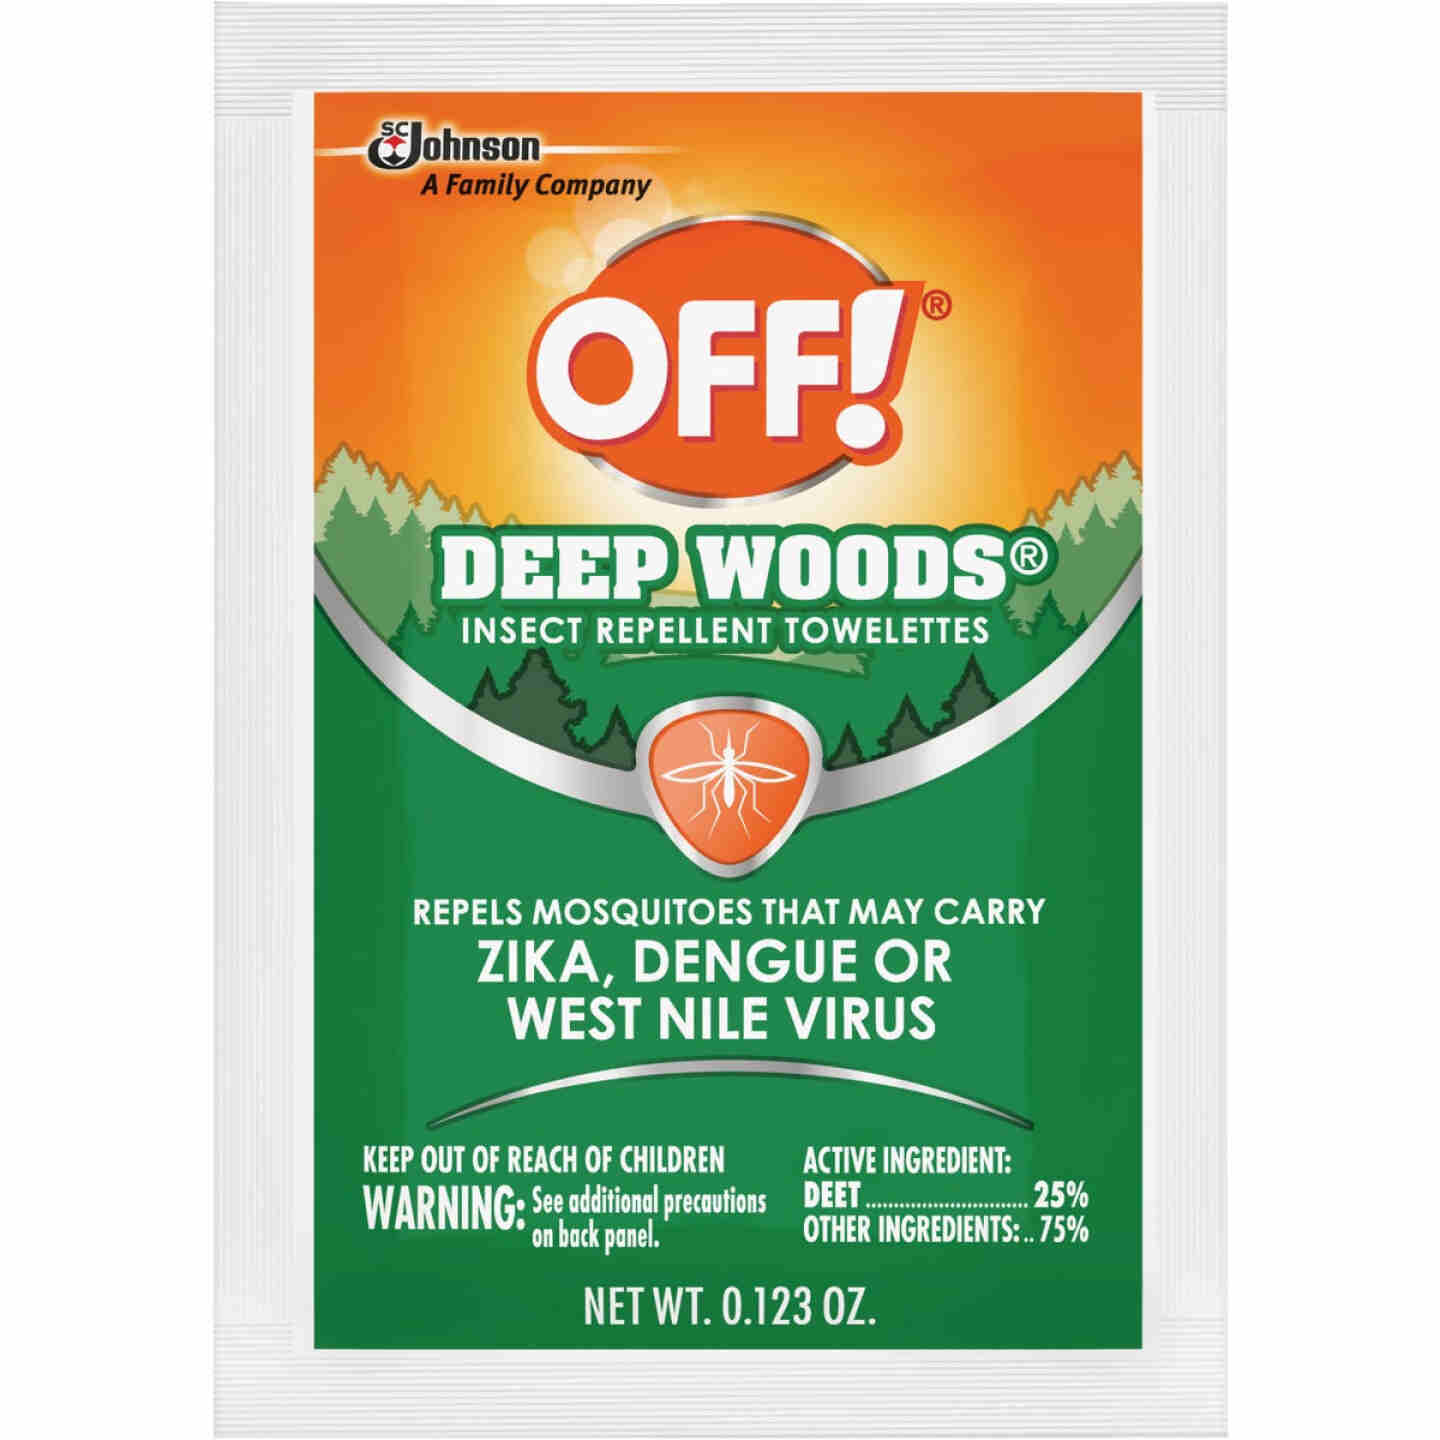 Deep Woods Off 12-Count Insect Repellent Towelettes Image 1